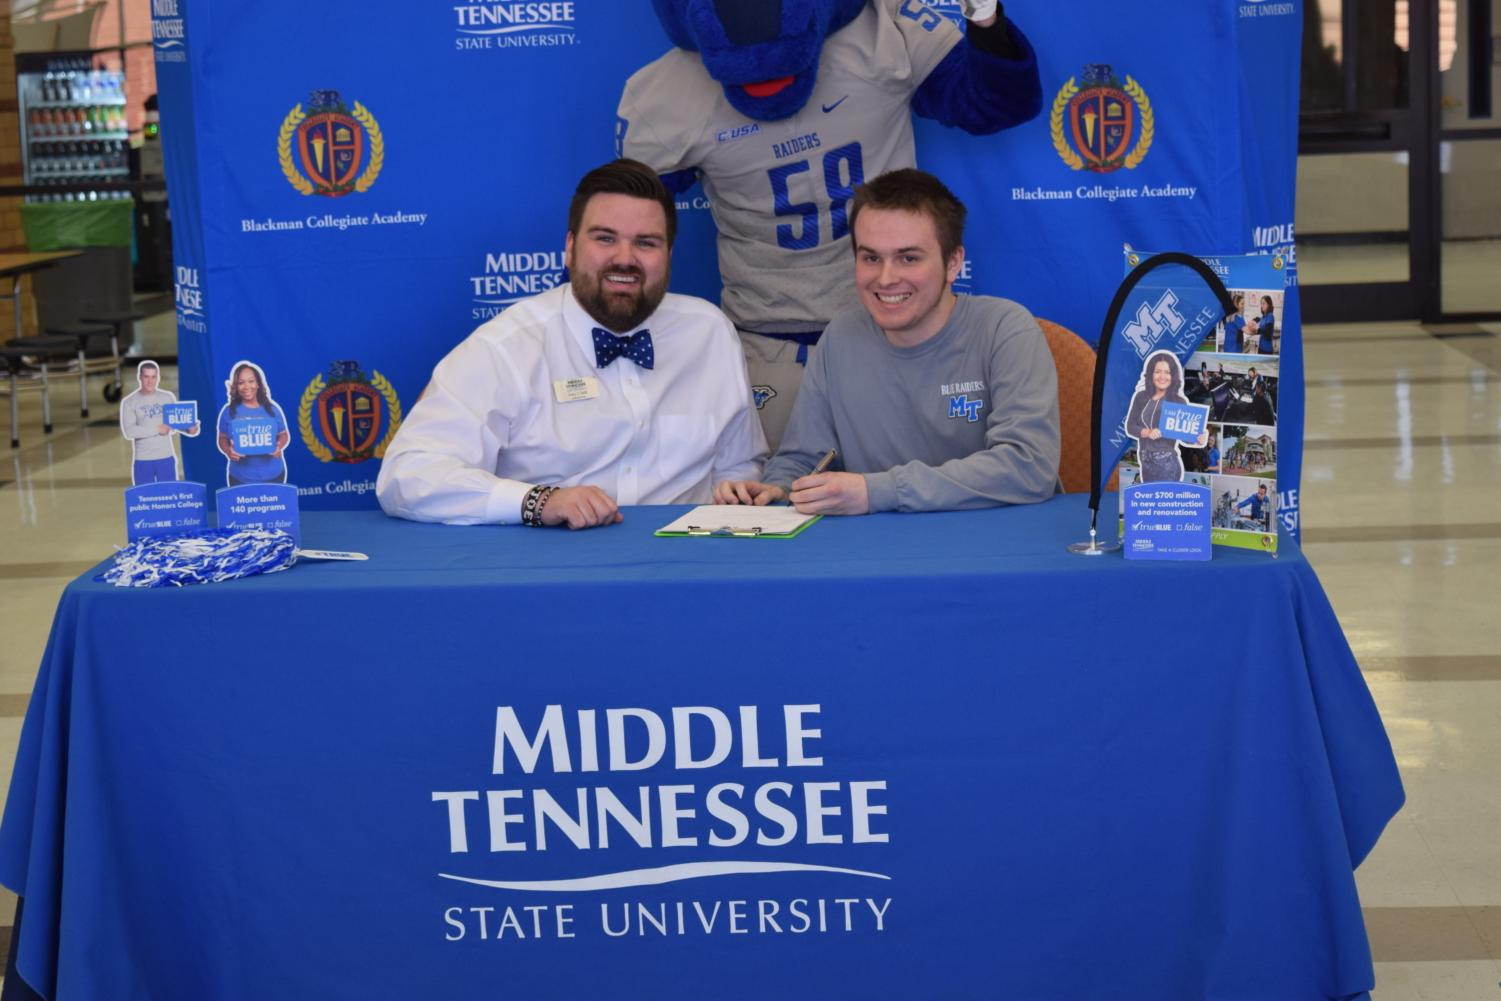 Ryan+Foster+will+attend+Middle+Tennessee+State+University+in+the+fall.